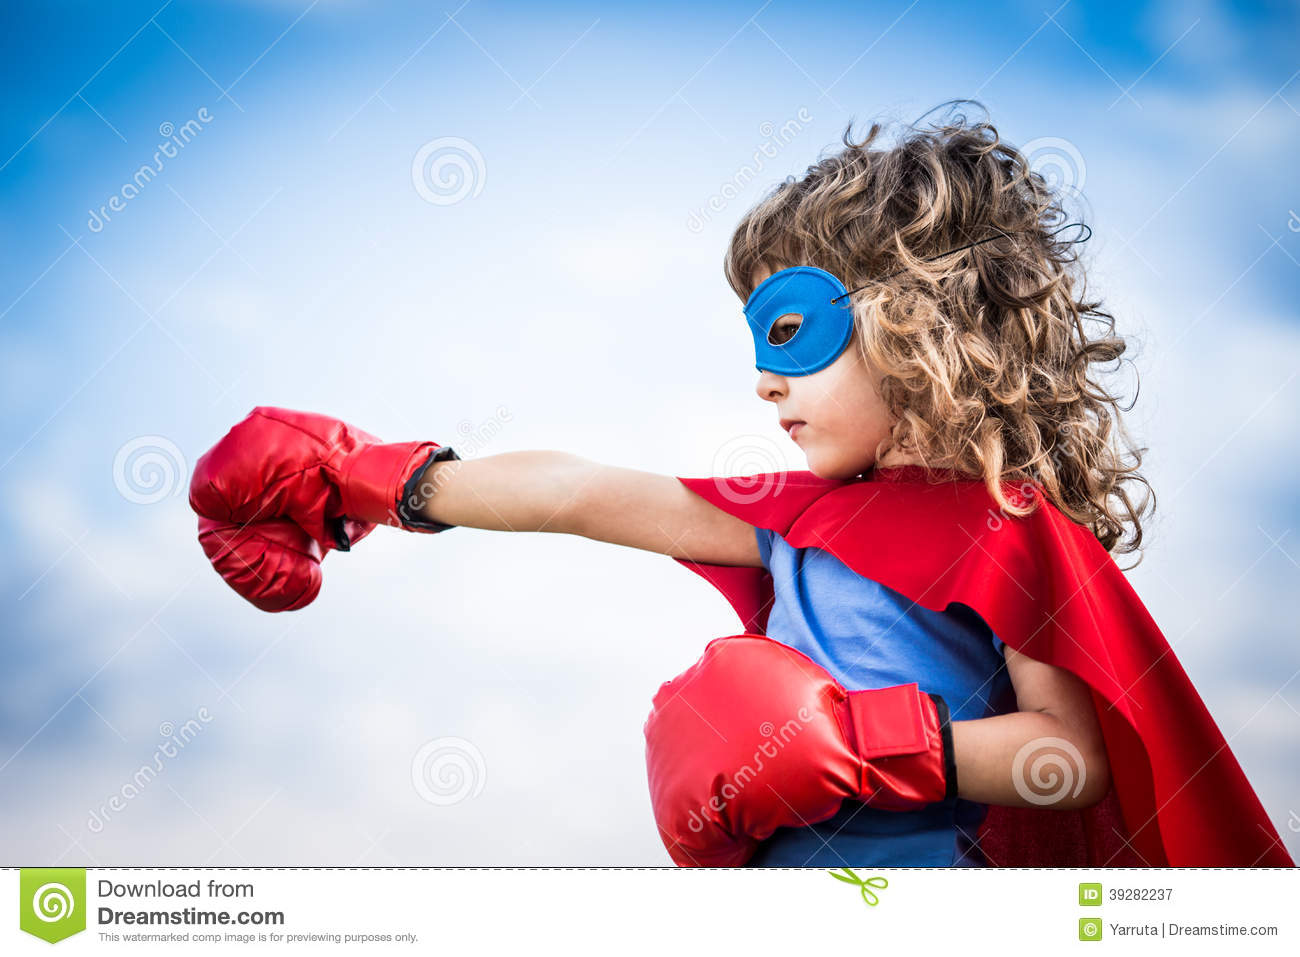 https://thumbs.dreamstime.com/z/superhero-kid-against-dramatic-blue-sky-background-39282237.jpg